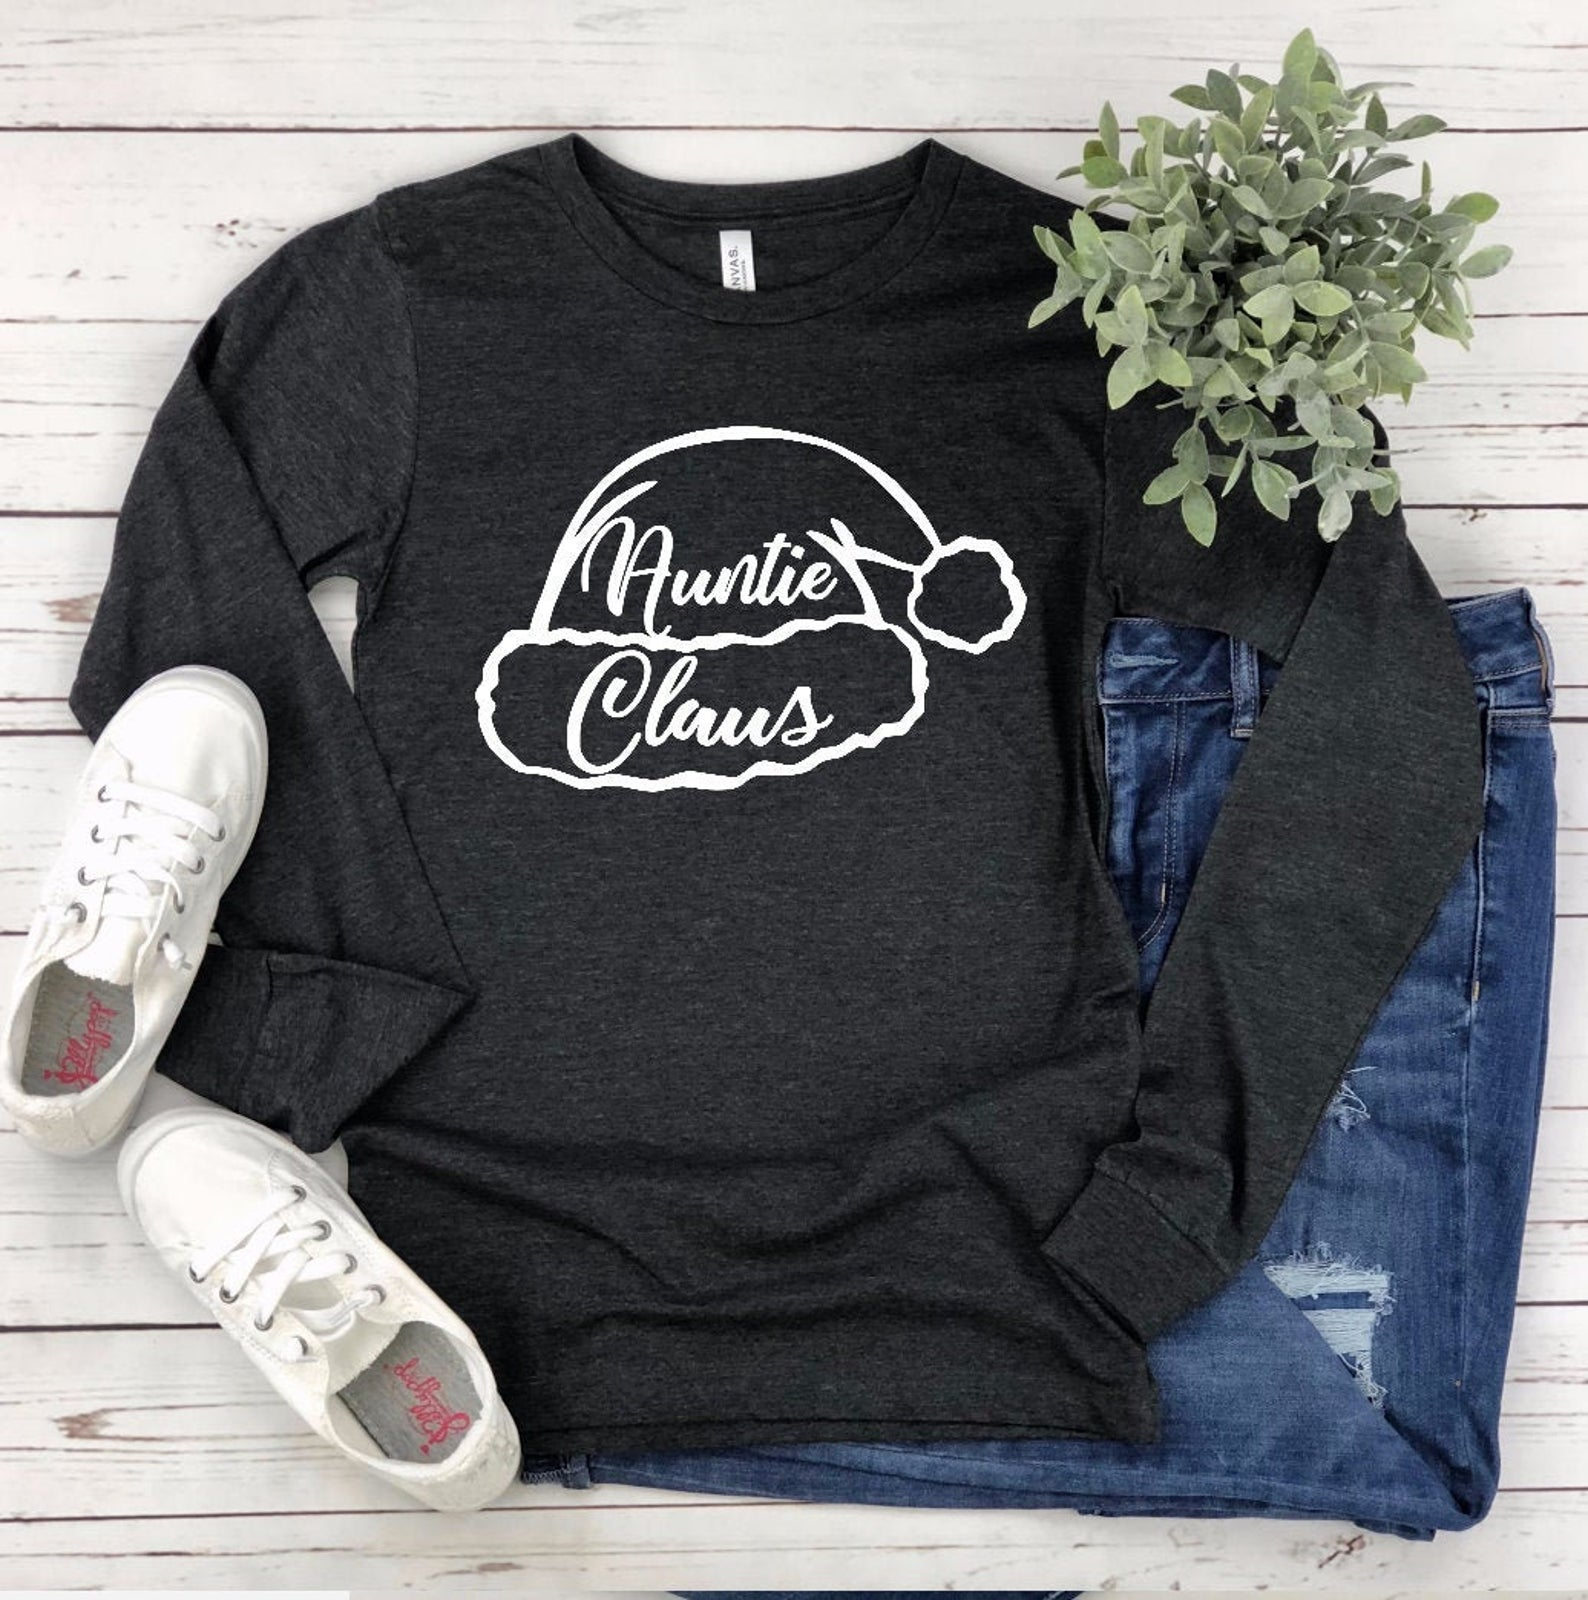 Aunt Christmas Long Sleeve T-shirt - Auntie Claus - Aunt Shirts - Family Christmas T-shirts - Matching Christmas T-shirts - Custom Christmas